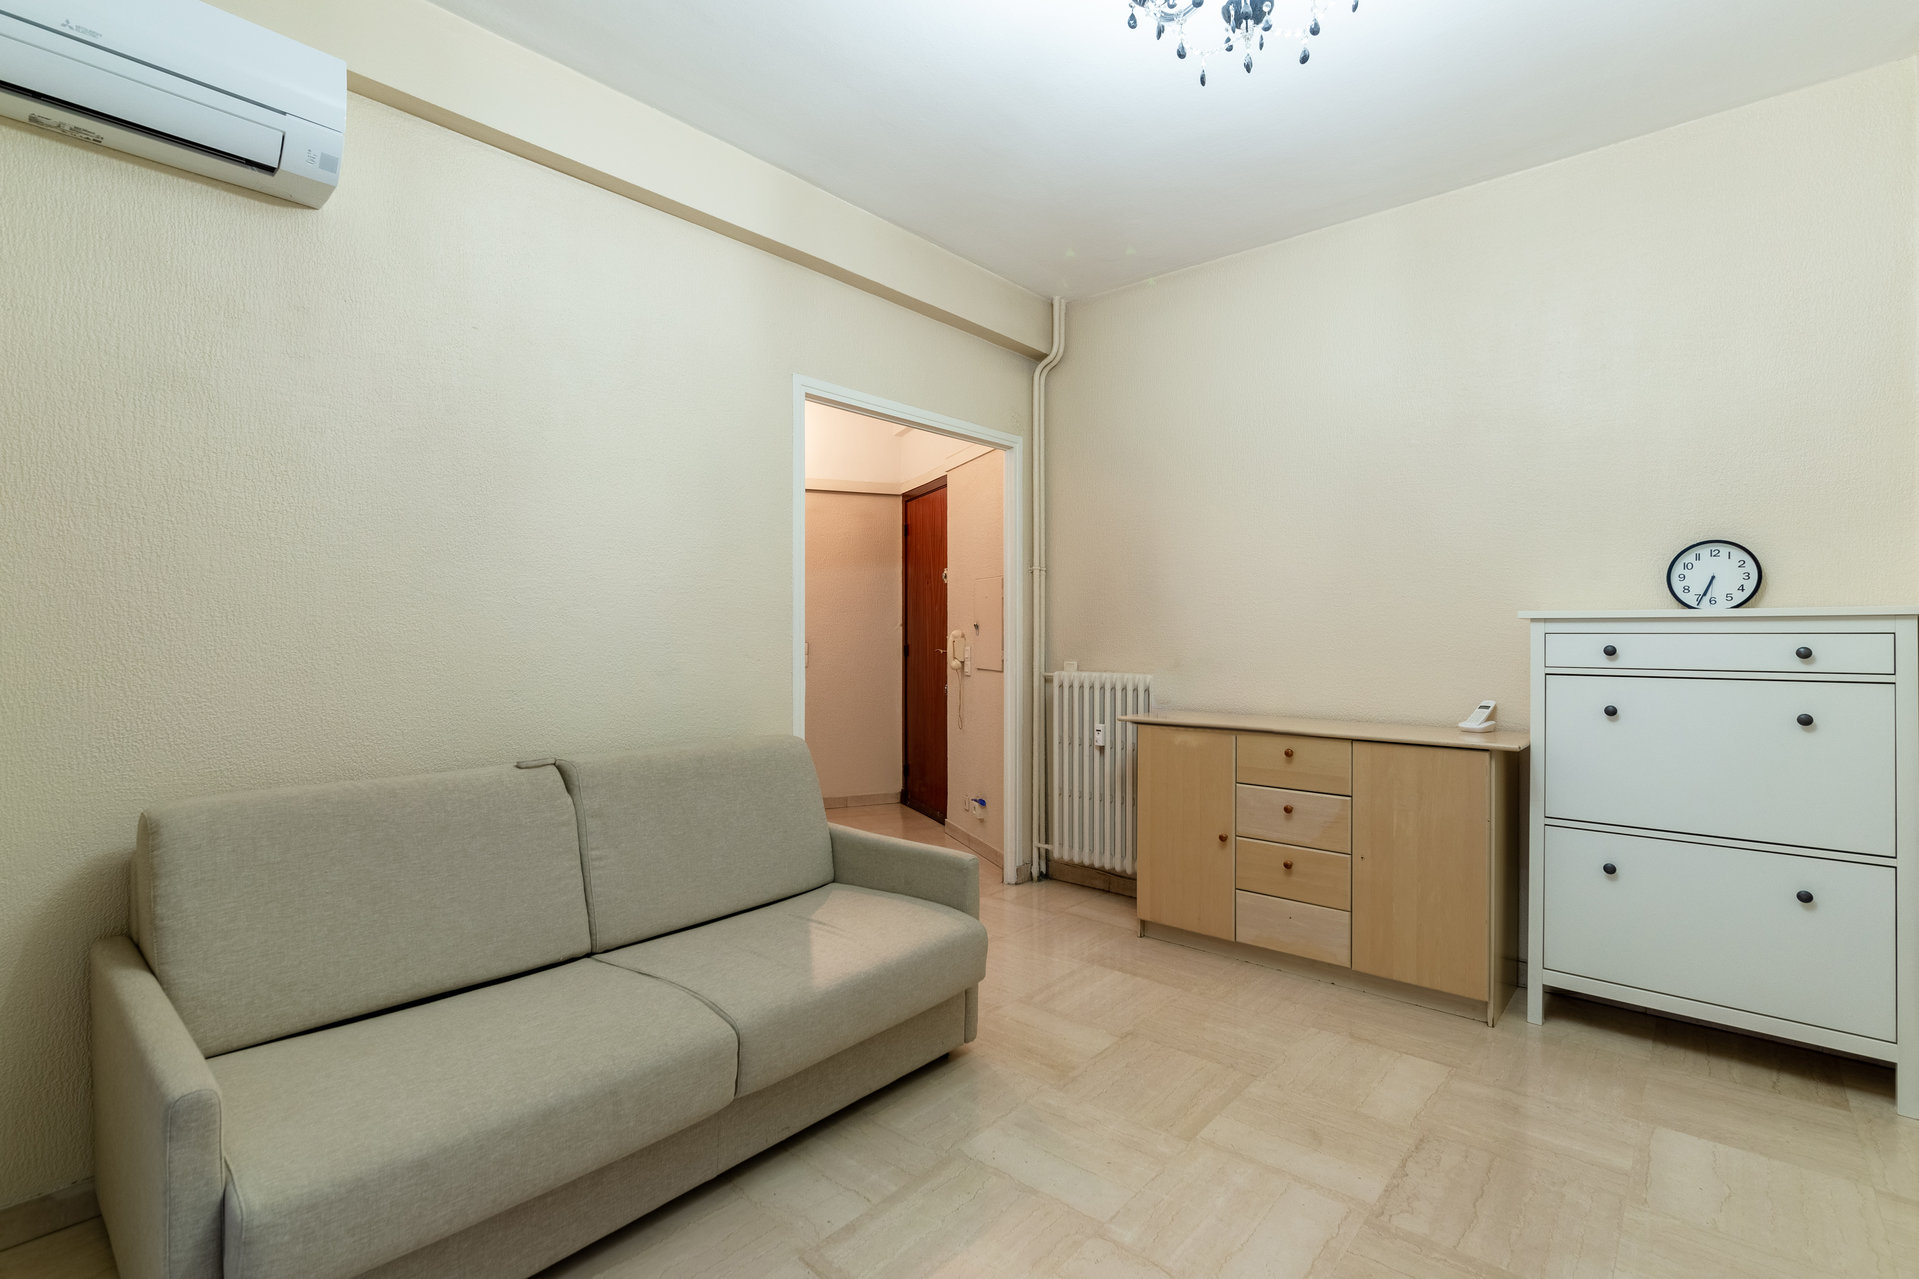 Nice - Gambetta - Chateauneuf: nice and bright apartment